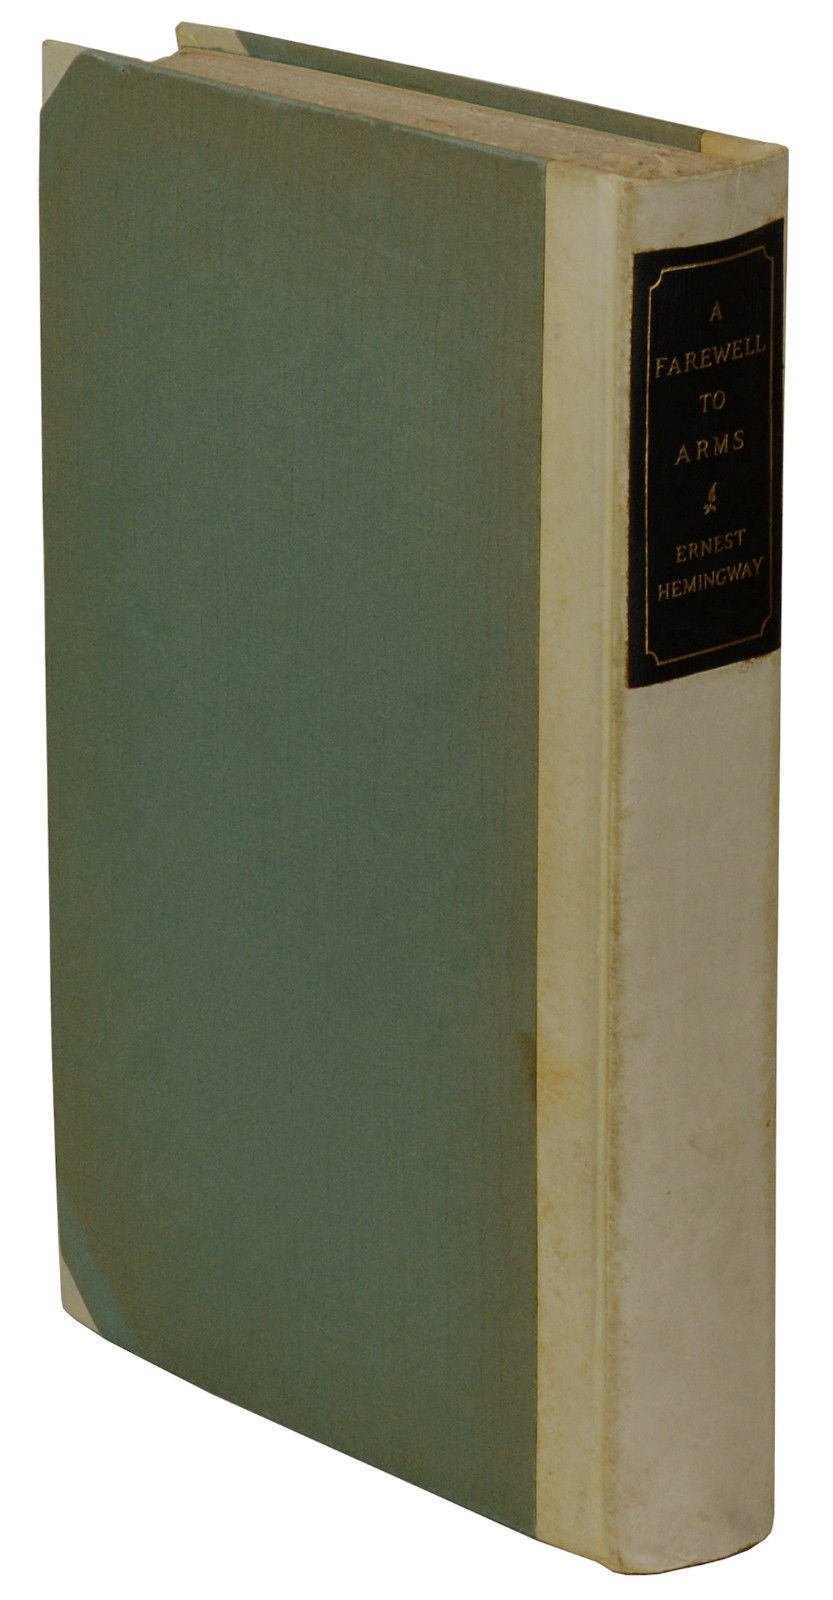 a farewell to arms ernest hemingway signed limited first edition a farewell to arms